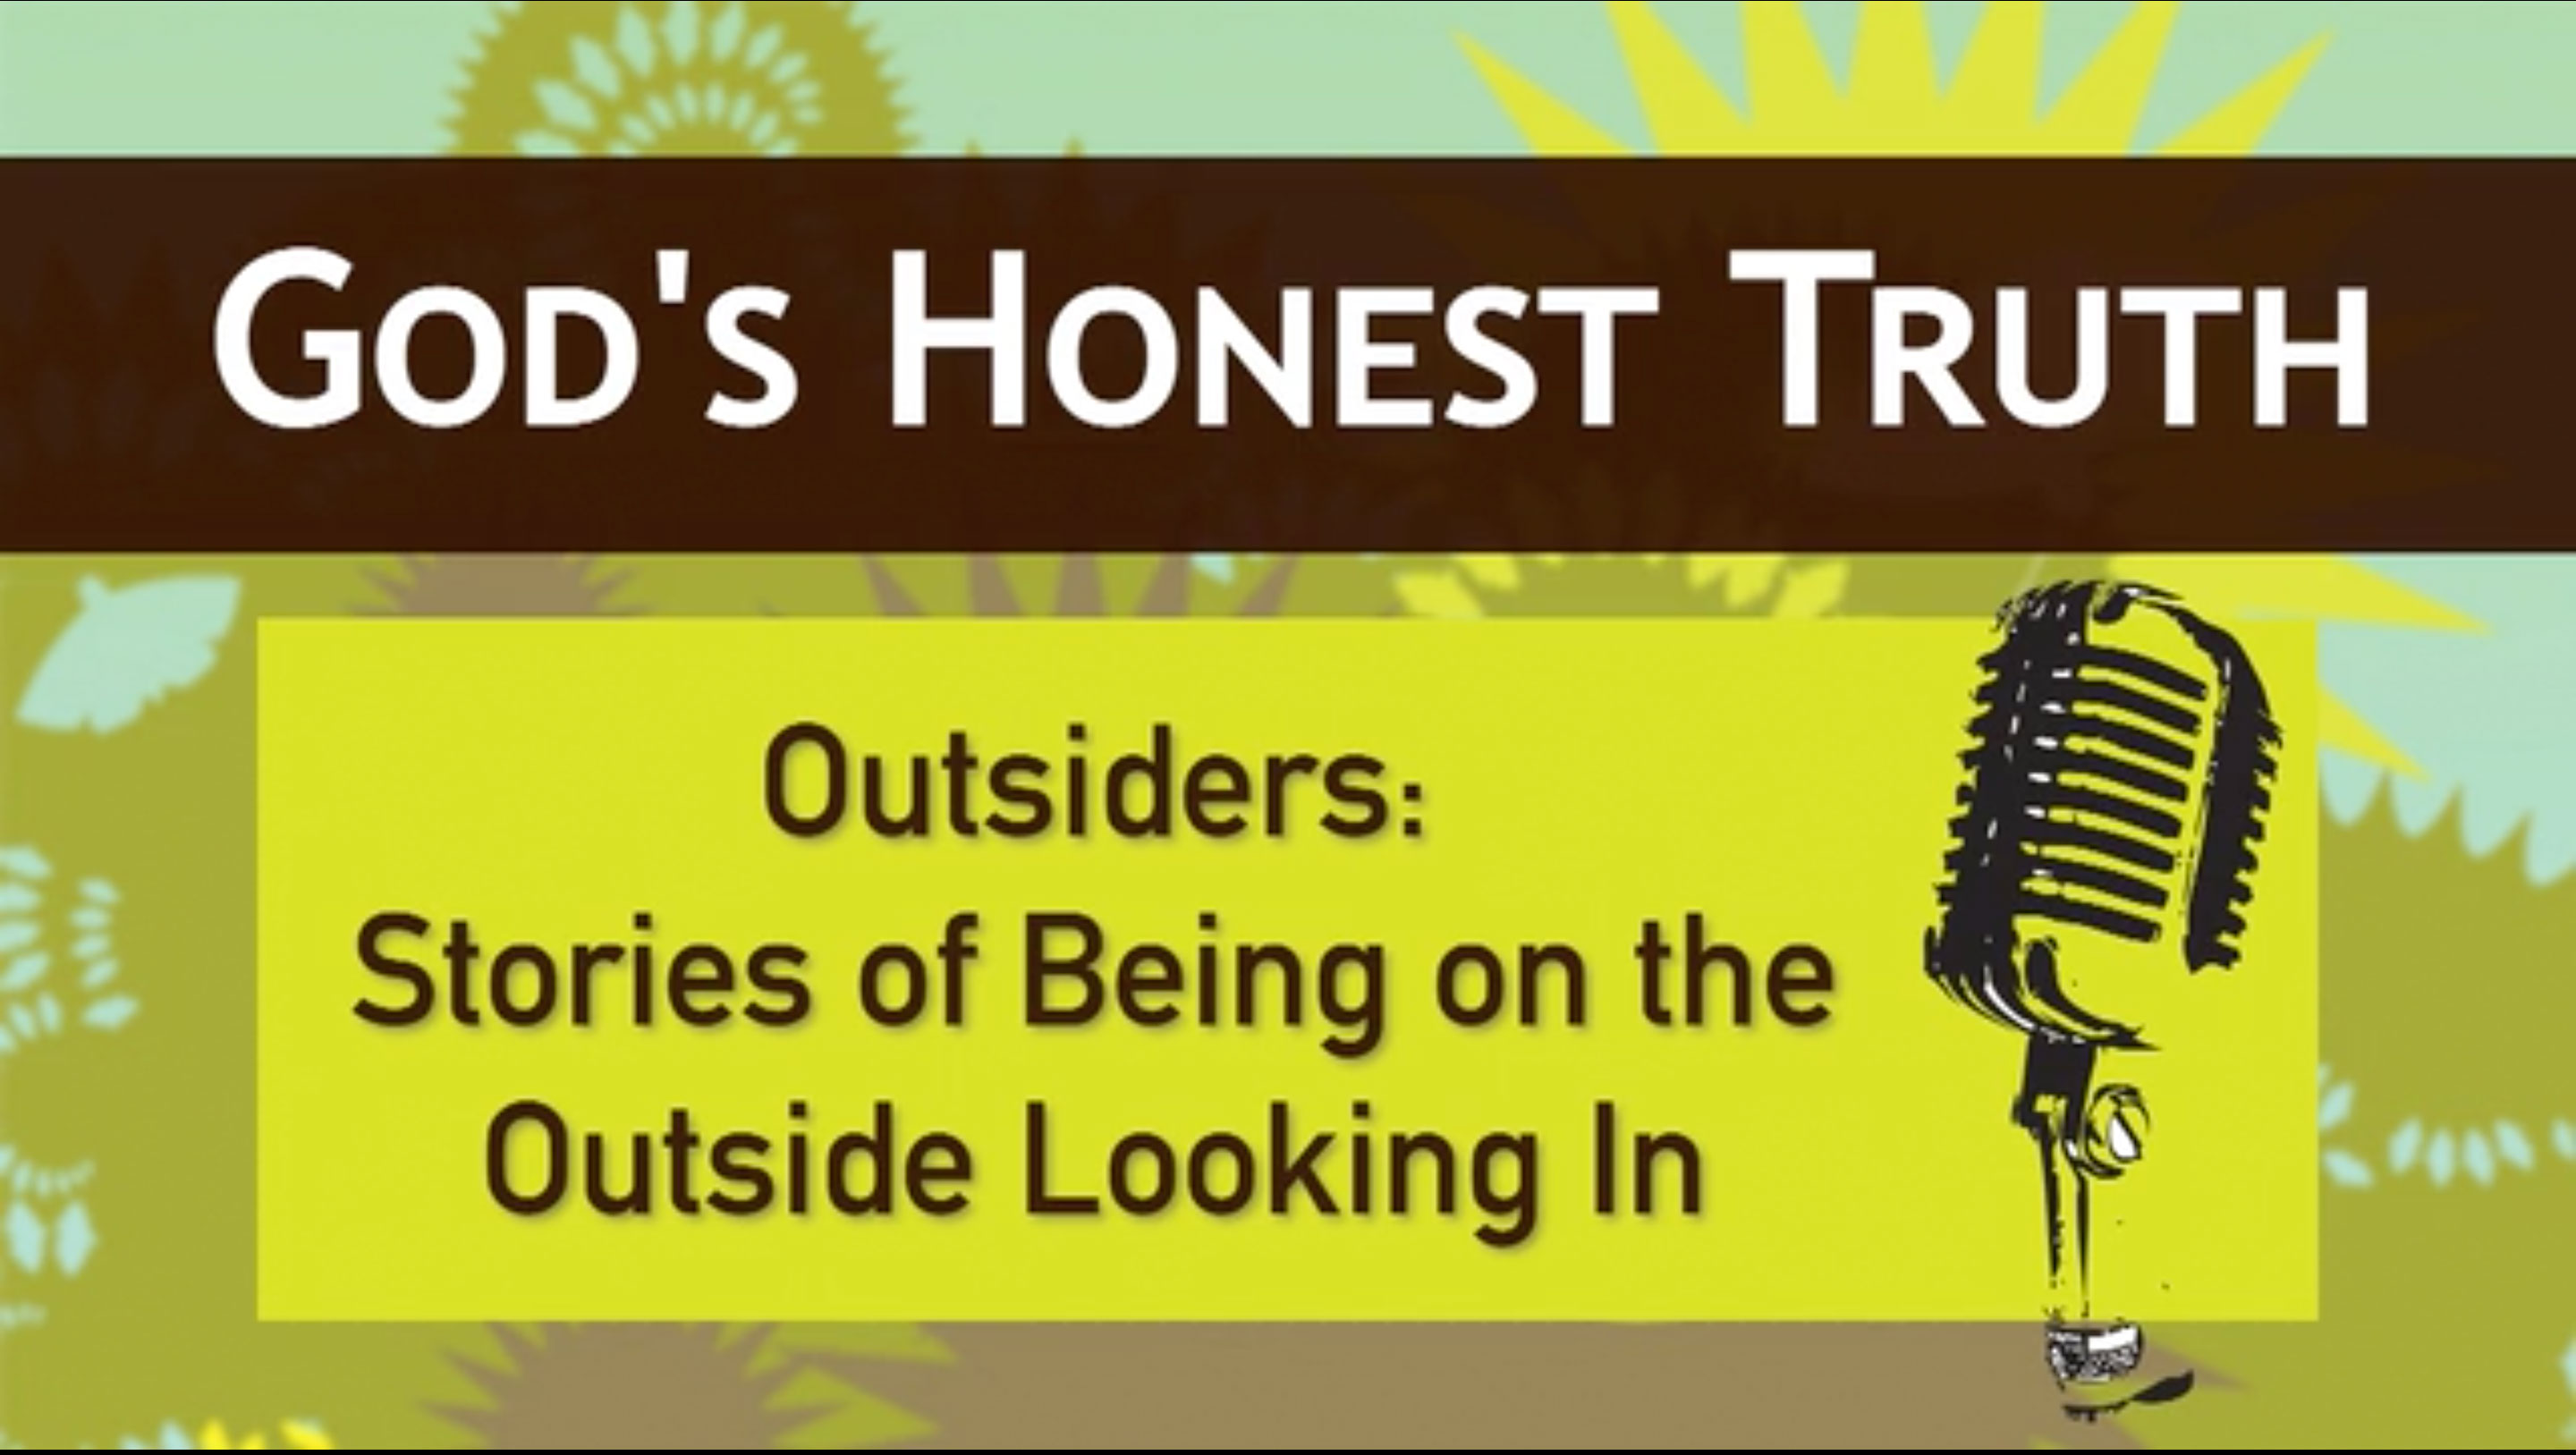 Outsiders: Stories About Being on the Outside Looking In